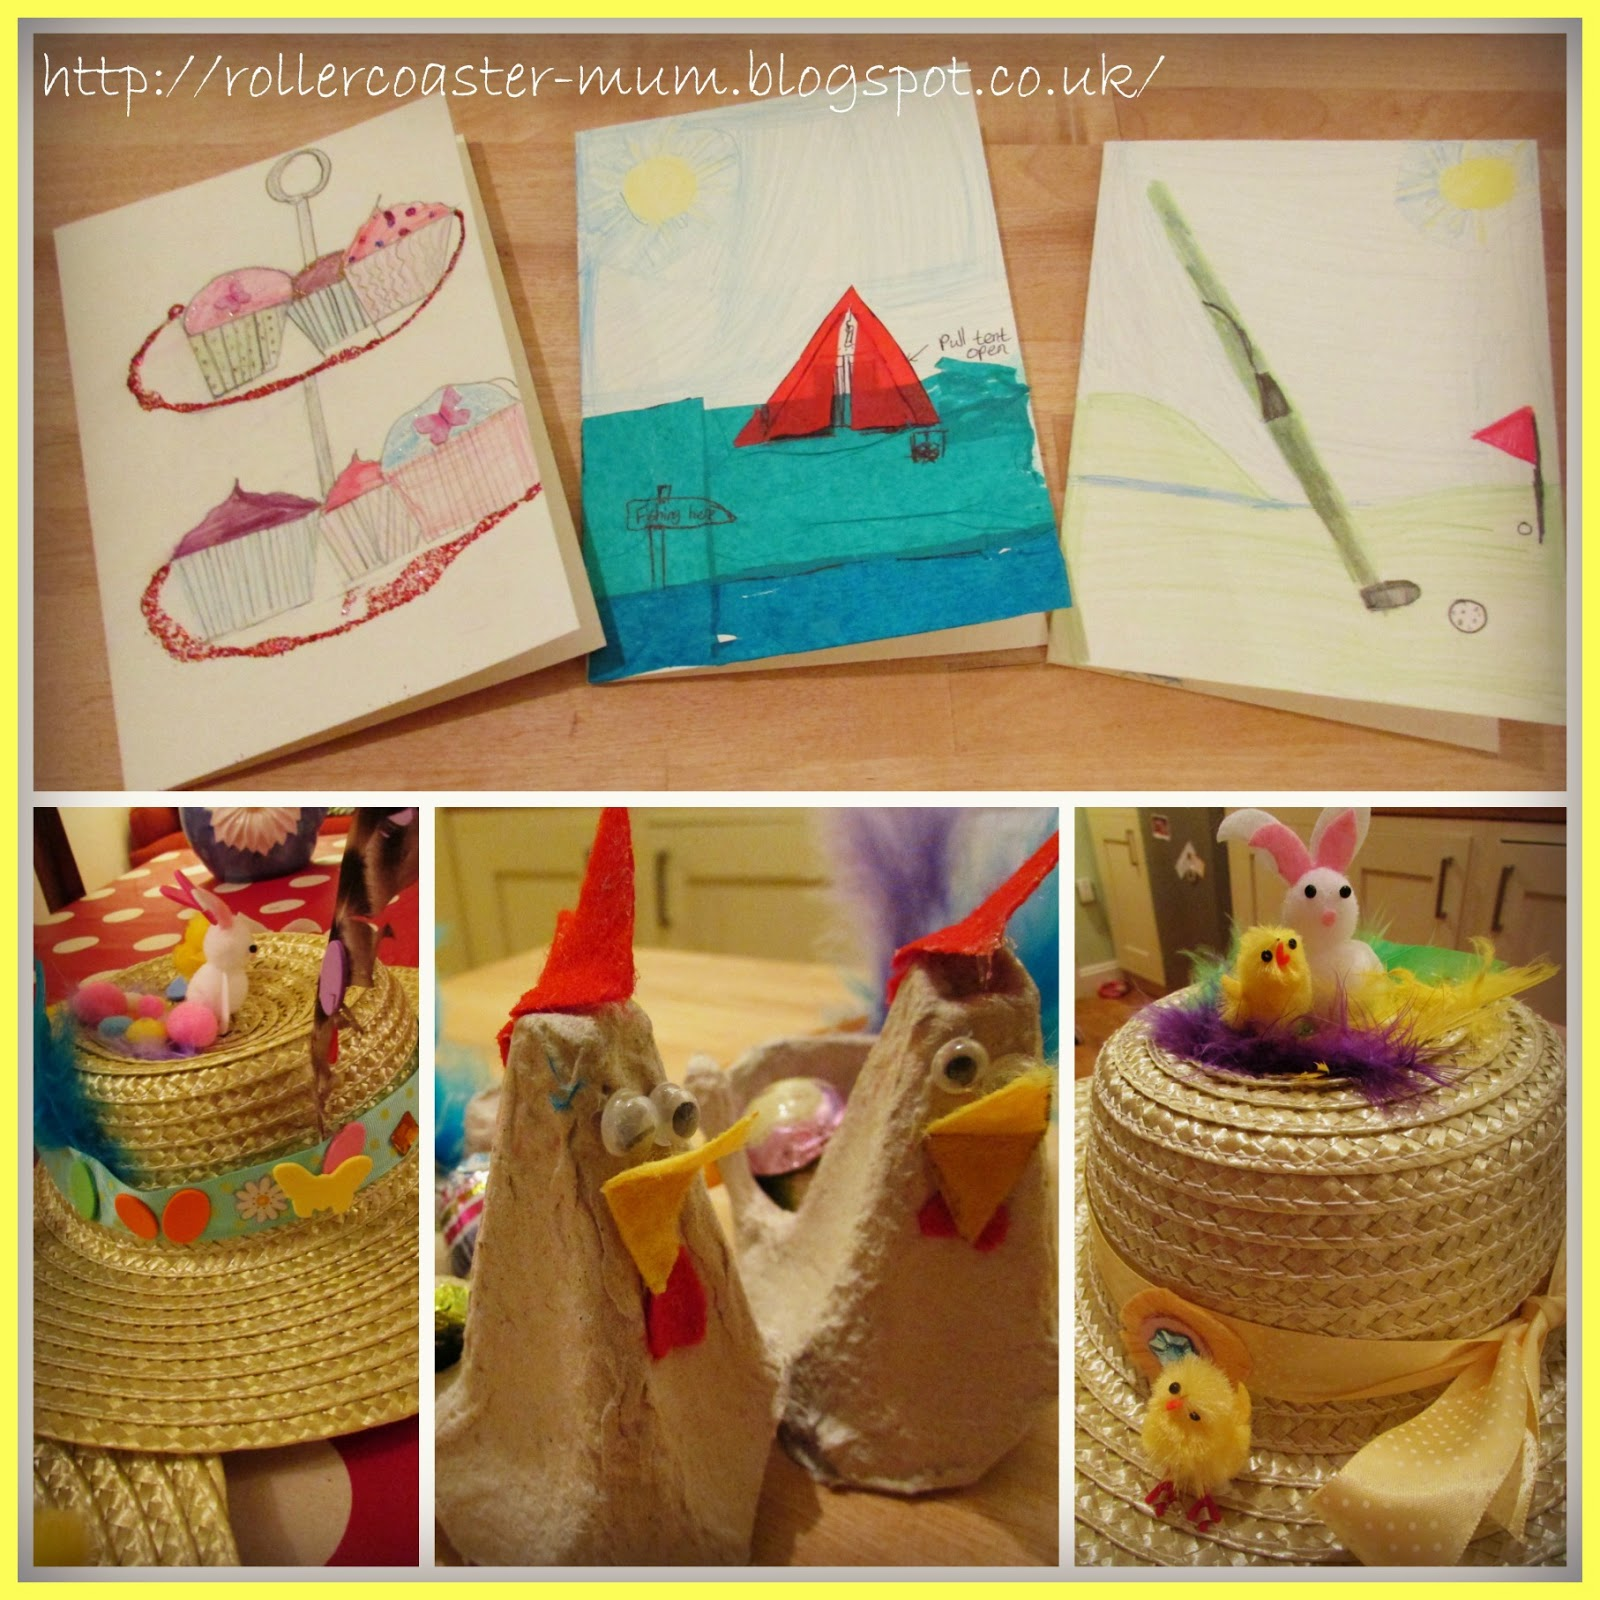 Homemade cards and Easter crafts